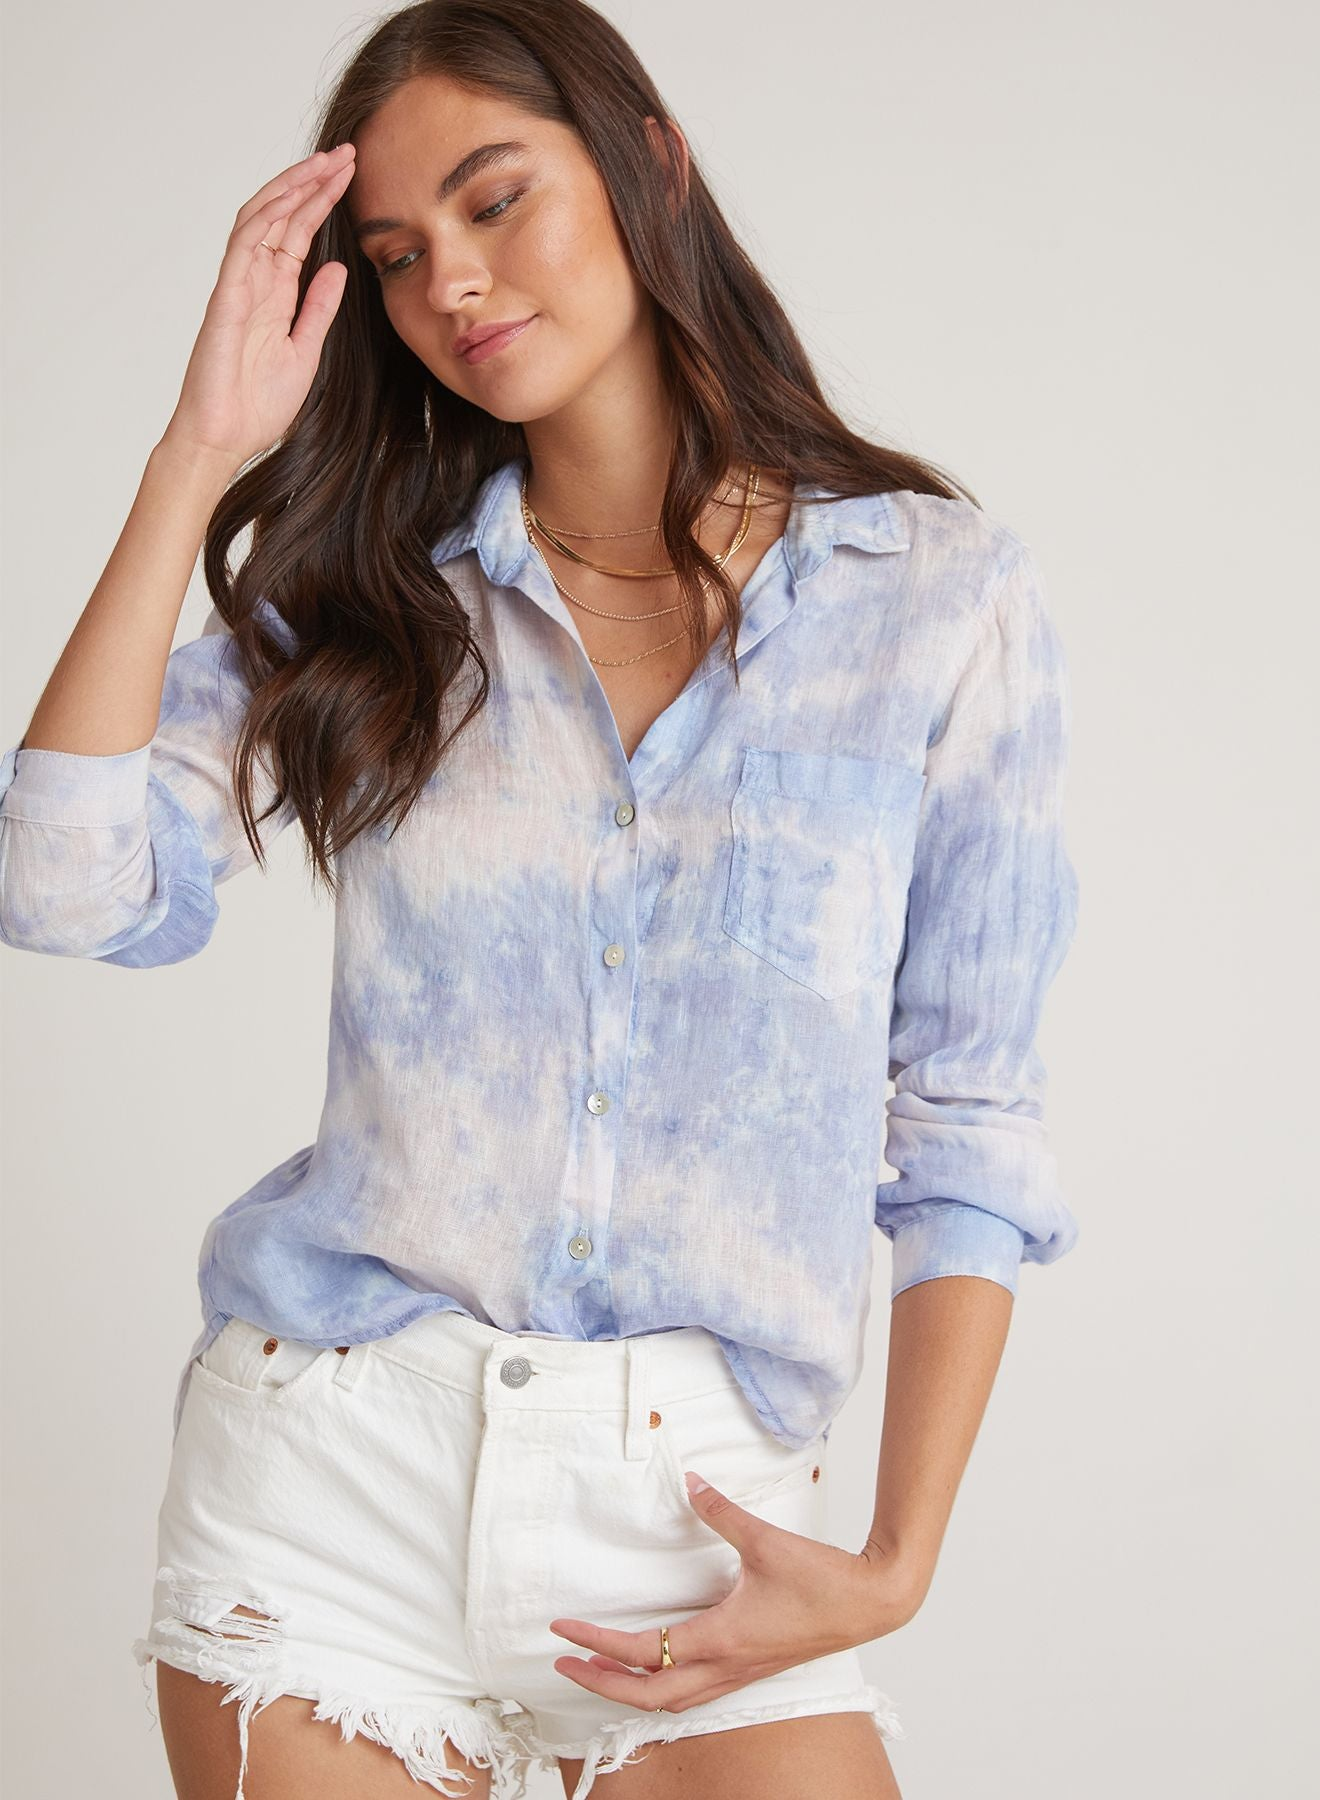 Linen Pocket Button Down Shirt - Galaxy-Bella Dahl-Over the Rainbow